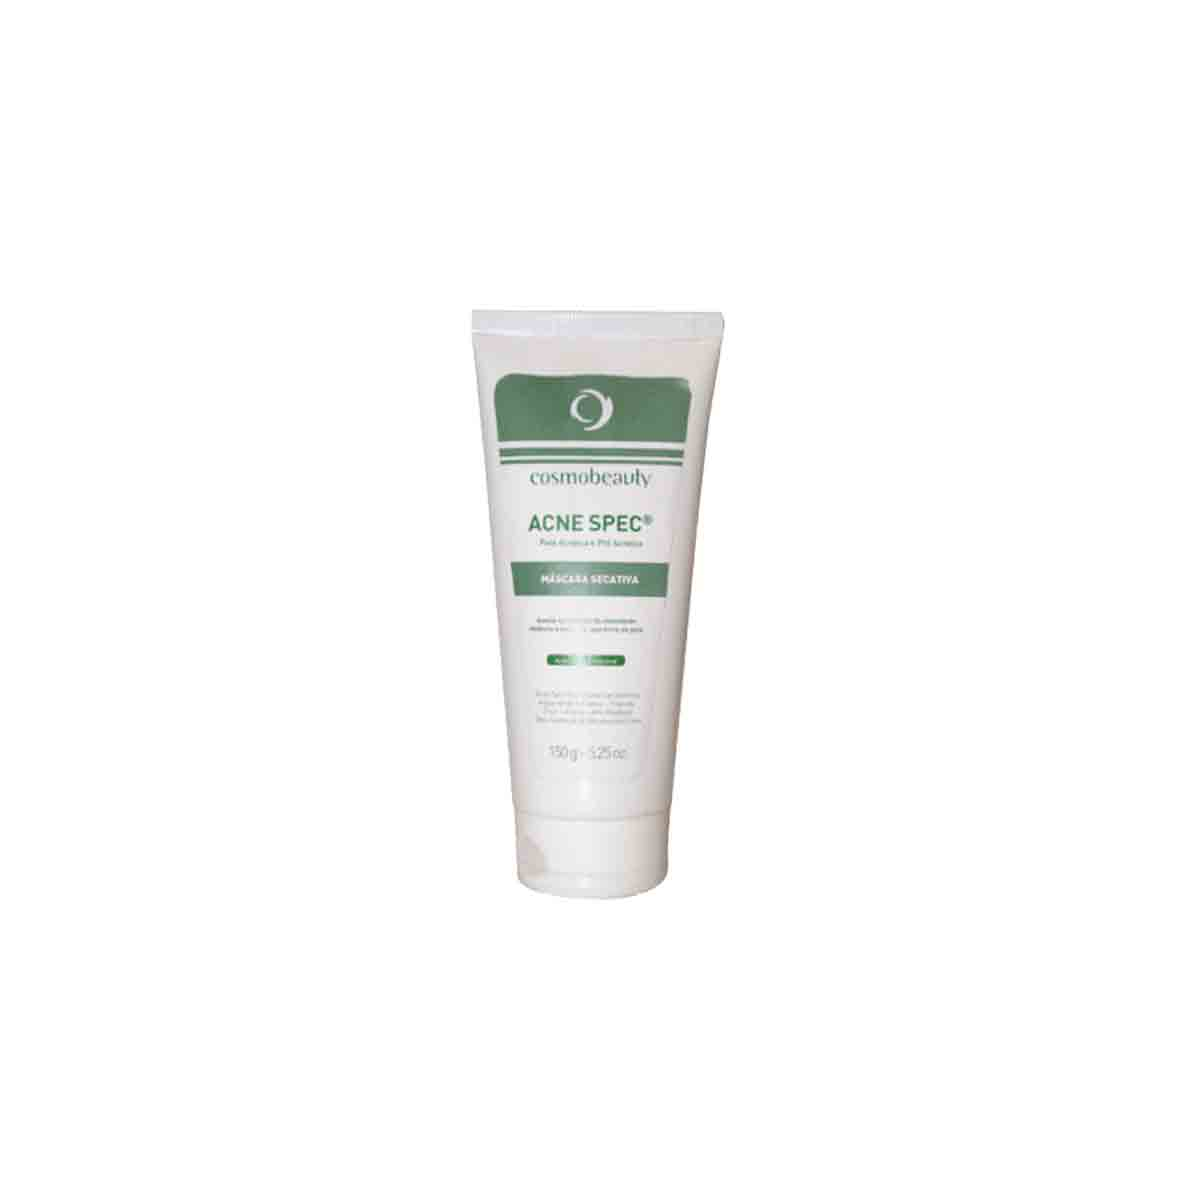 Máscara Secativa Acne Spec  - 150g